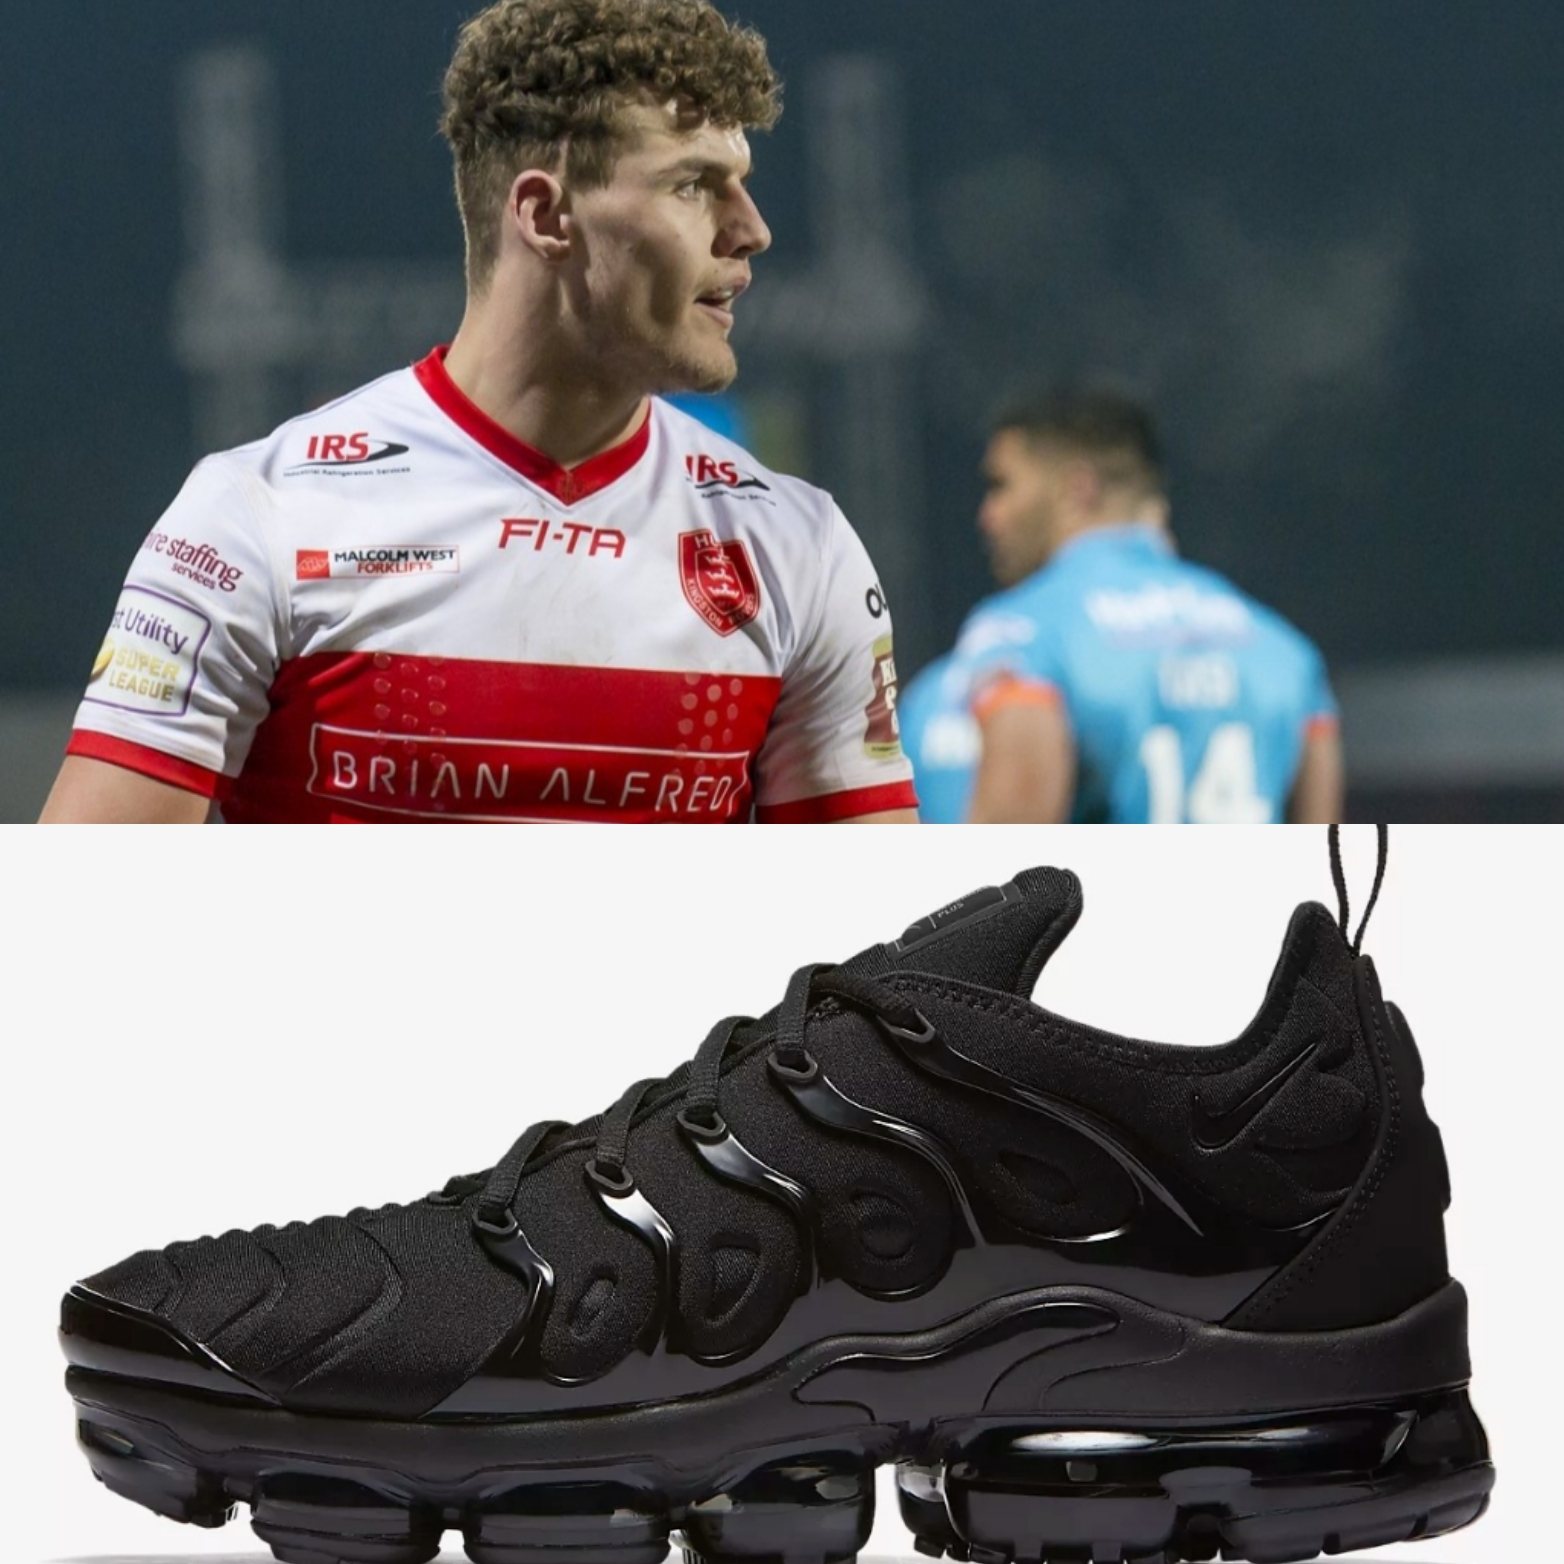 A popular choice, Loose-Forward George Lawler is also a big fan of the all black VaporMax!